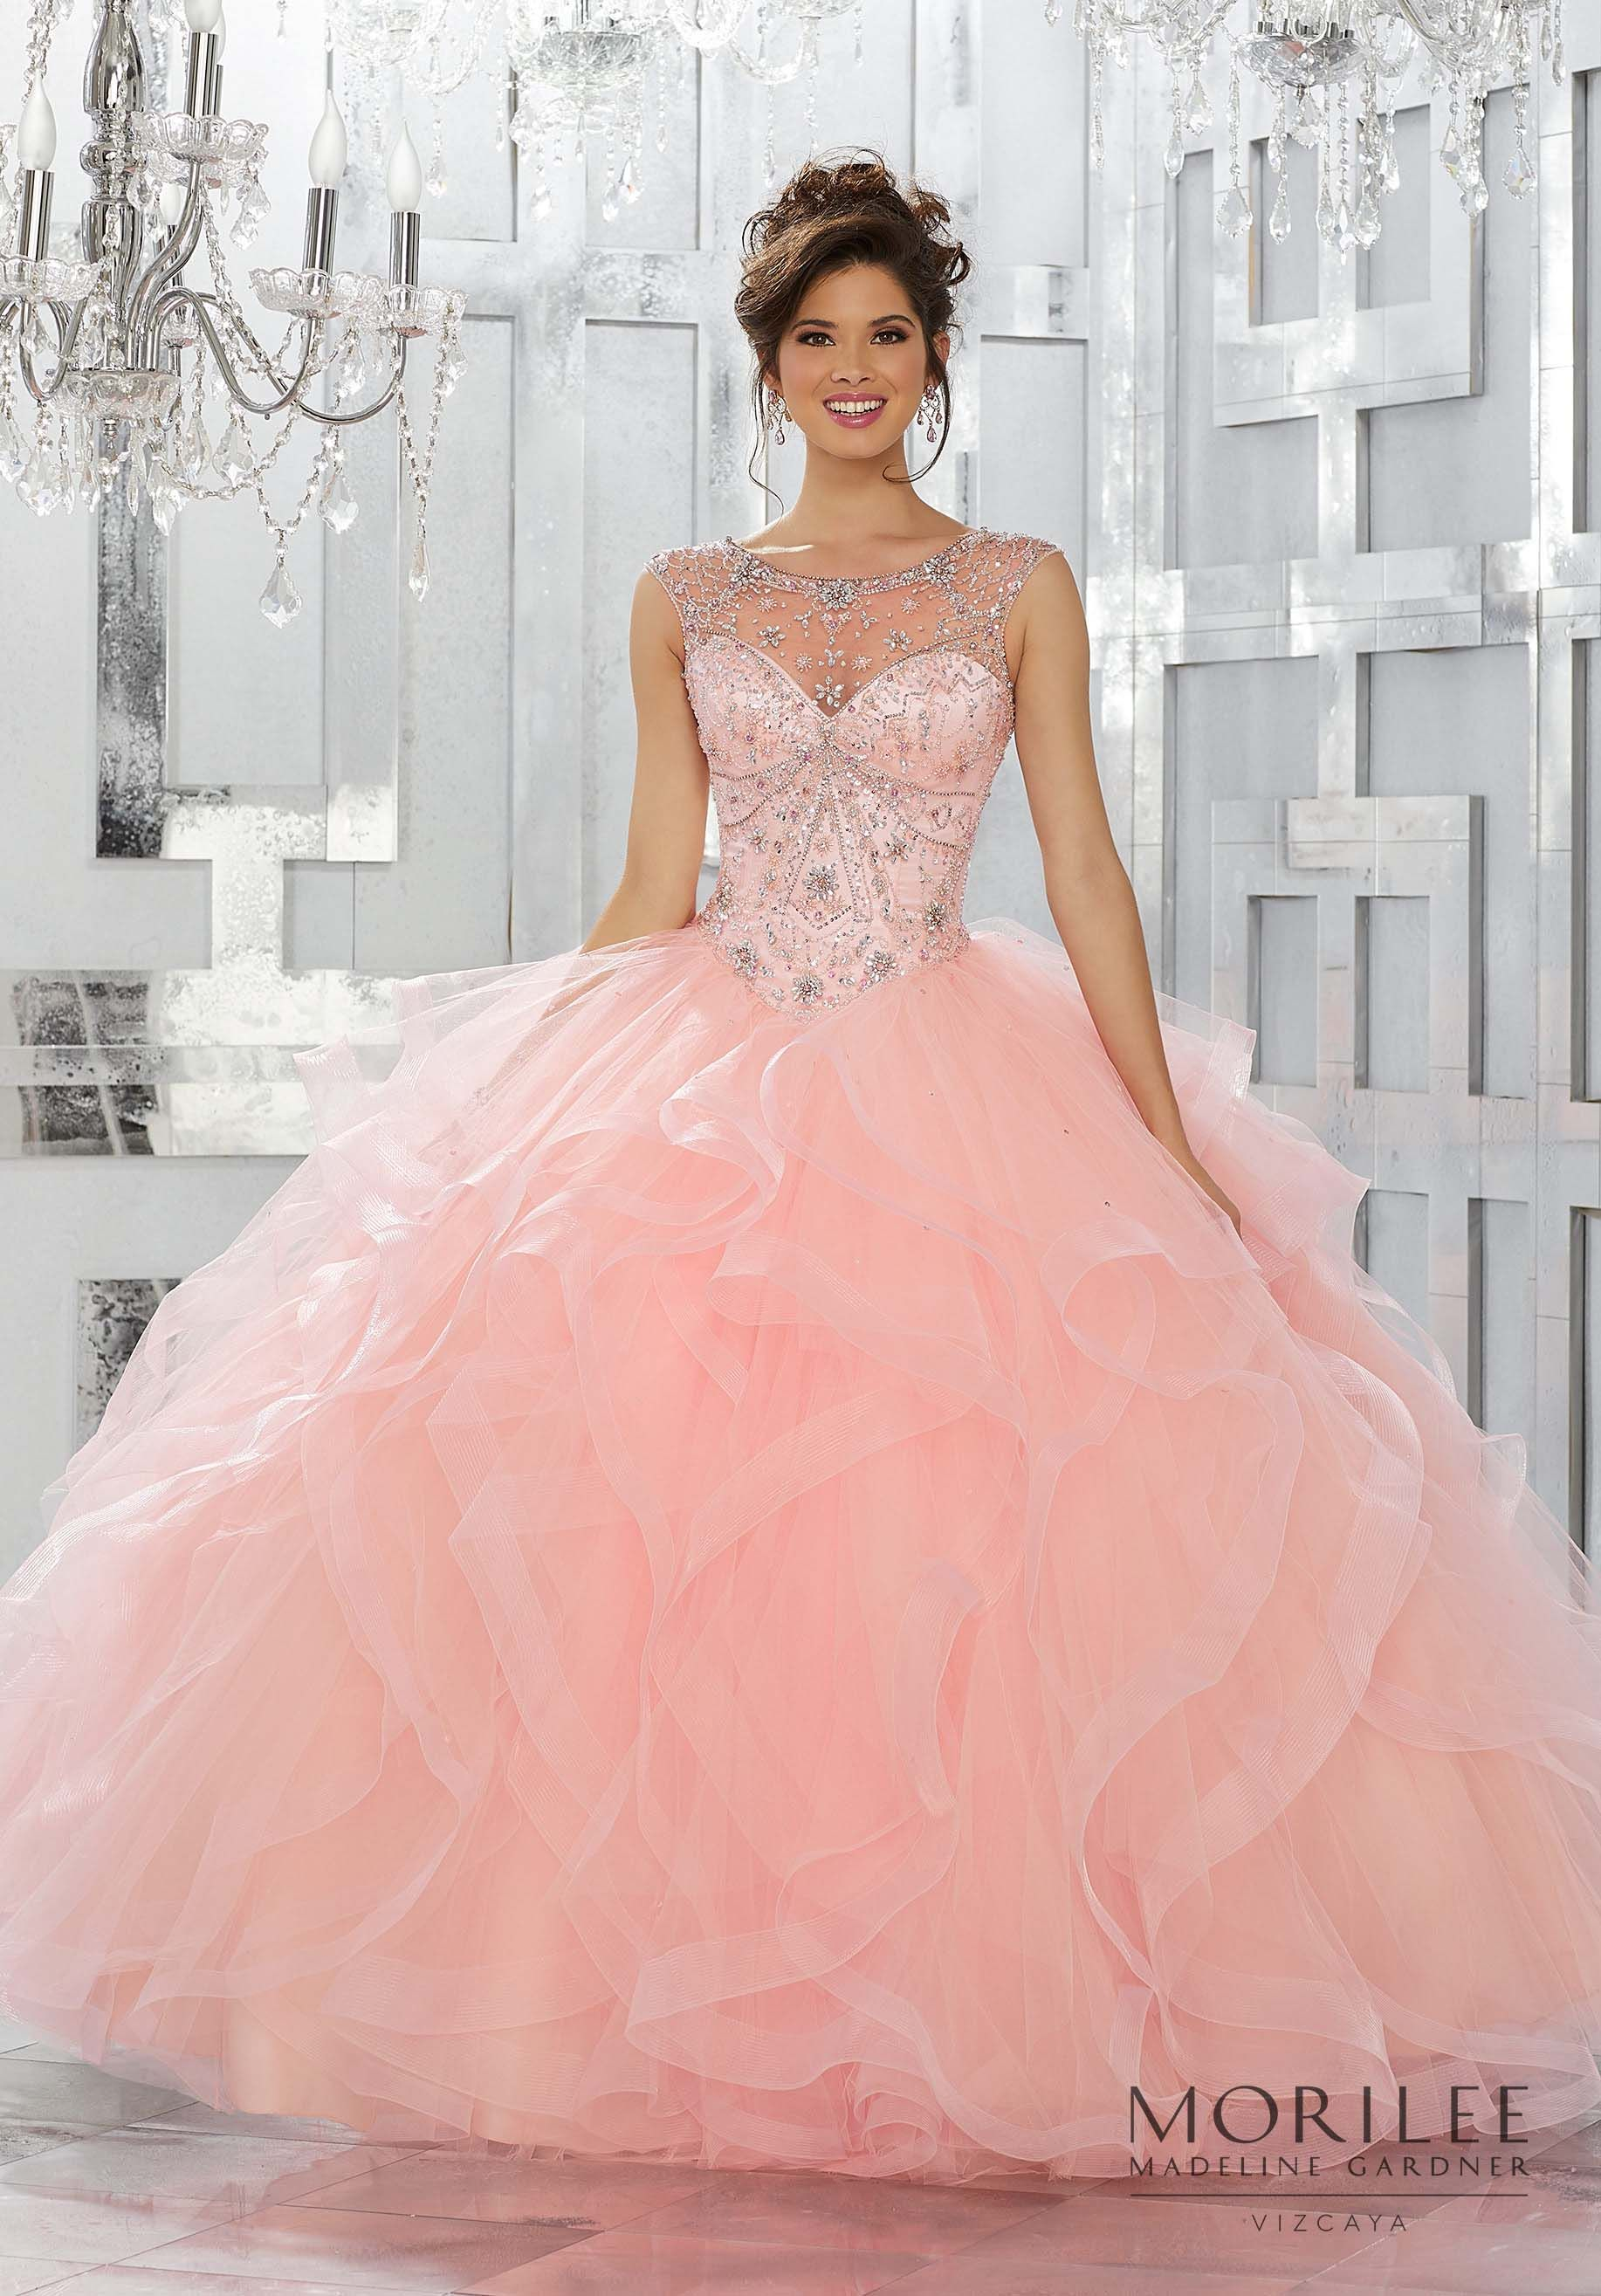 Jeweled Net Bodice on a Flounced Tulle Ball Gown Skirt | Cheveux ...